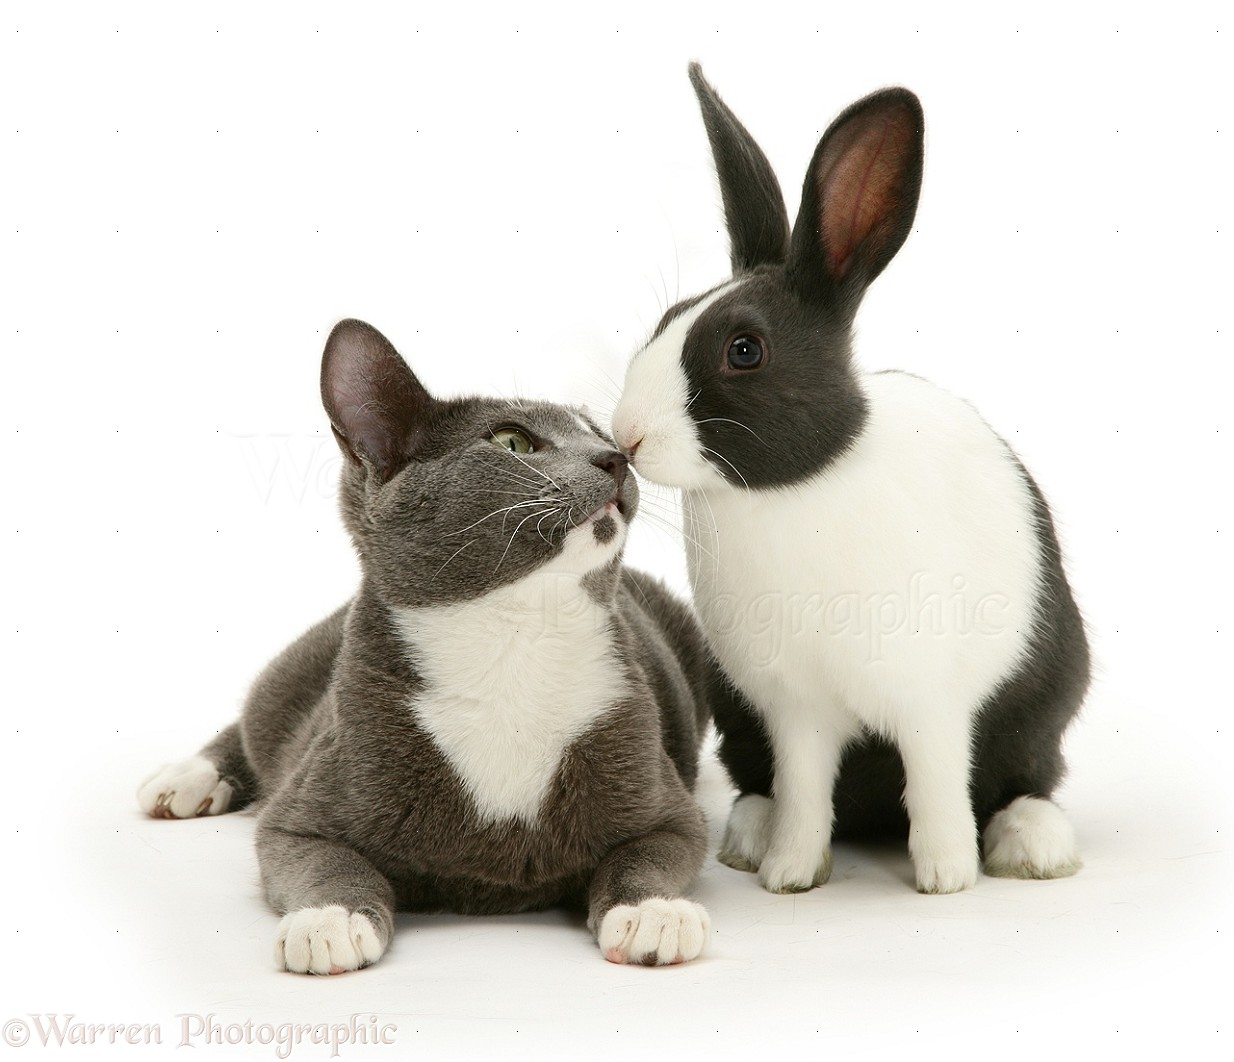 Cat And Rabbit Breed Together